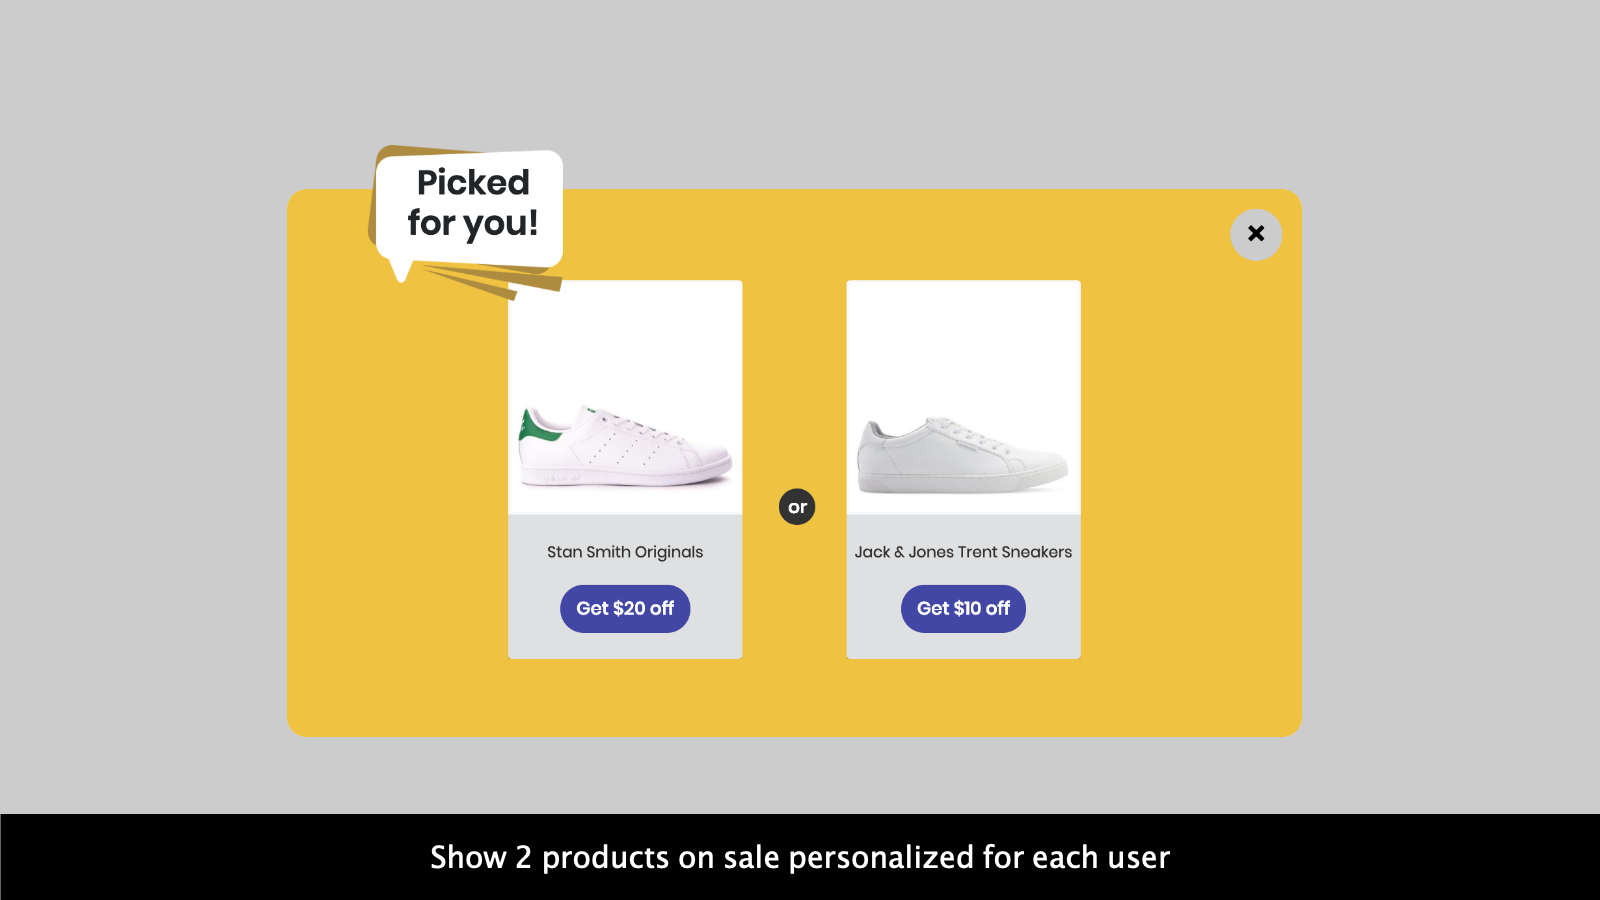 Show personalized products